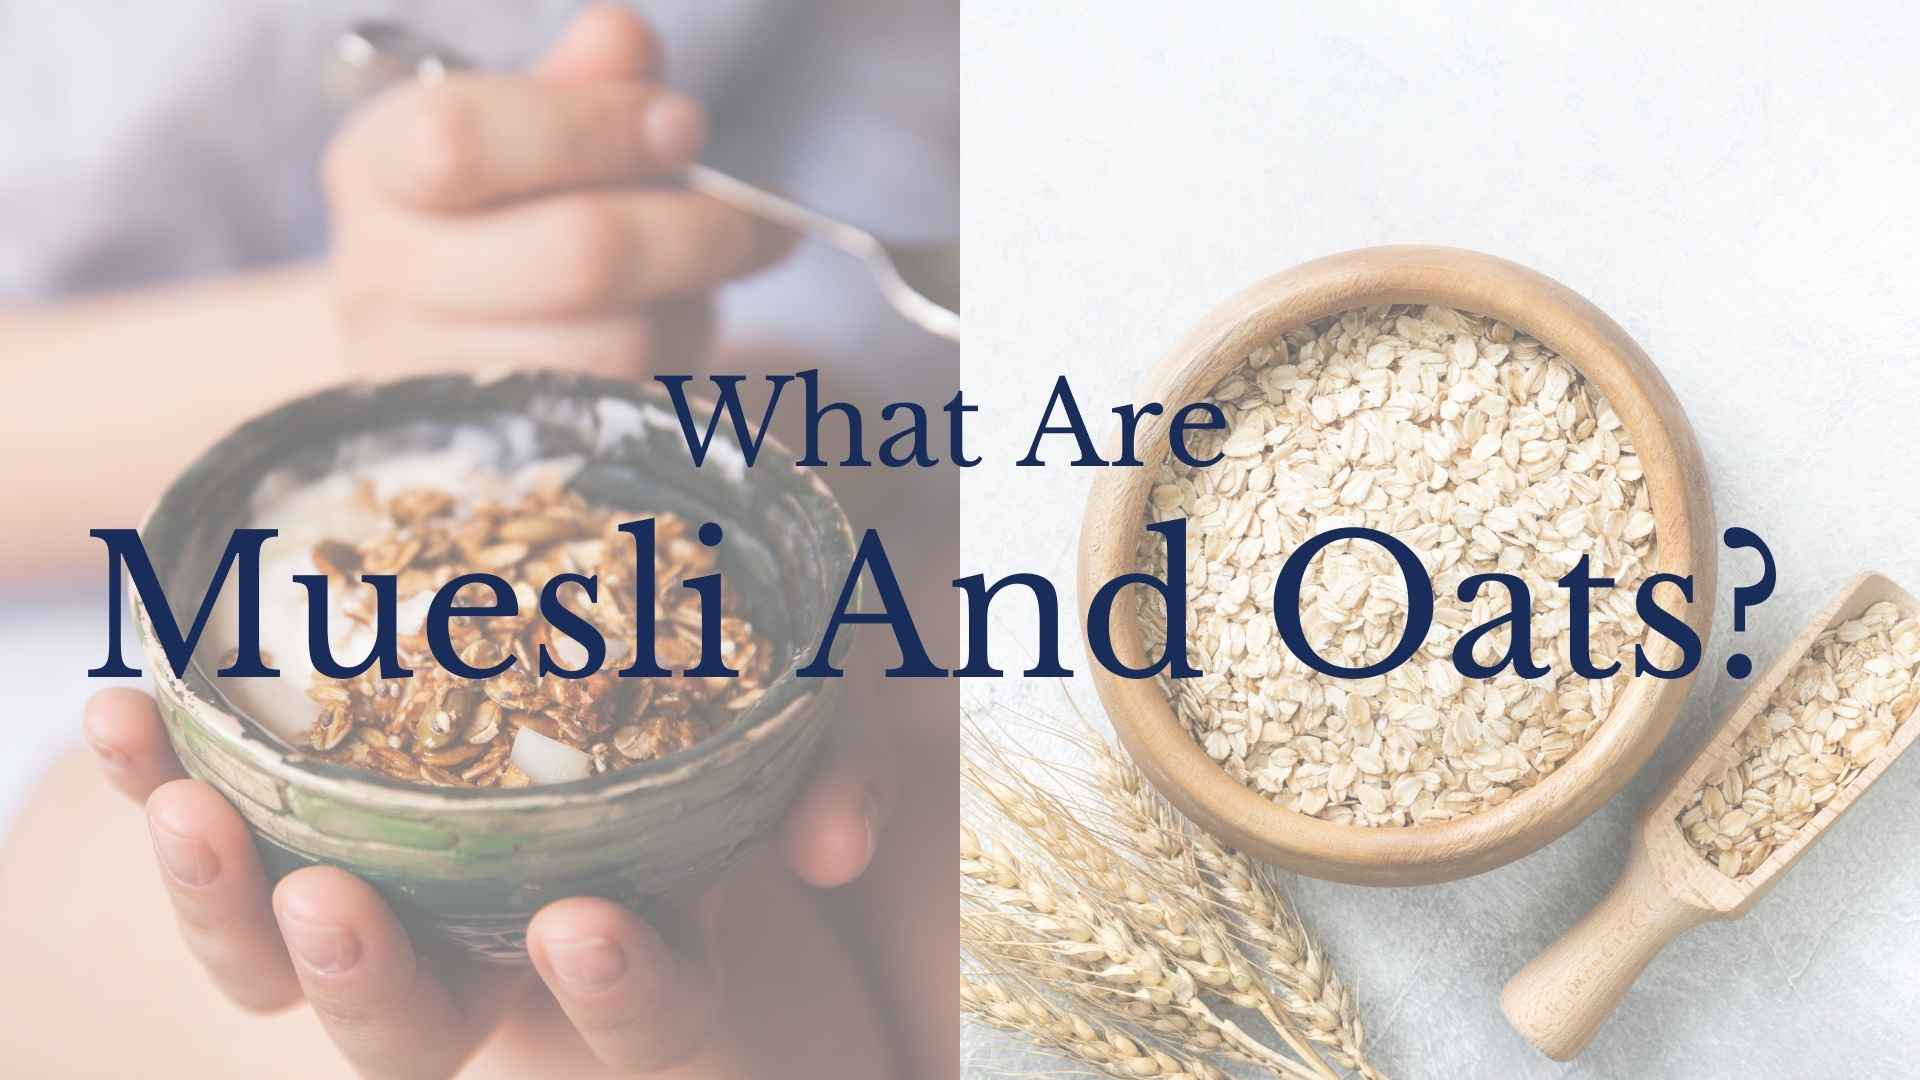 what are muesli and oats